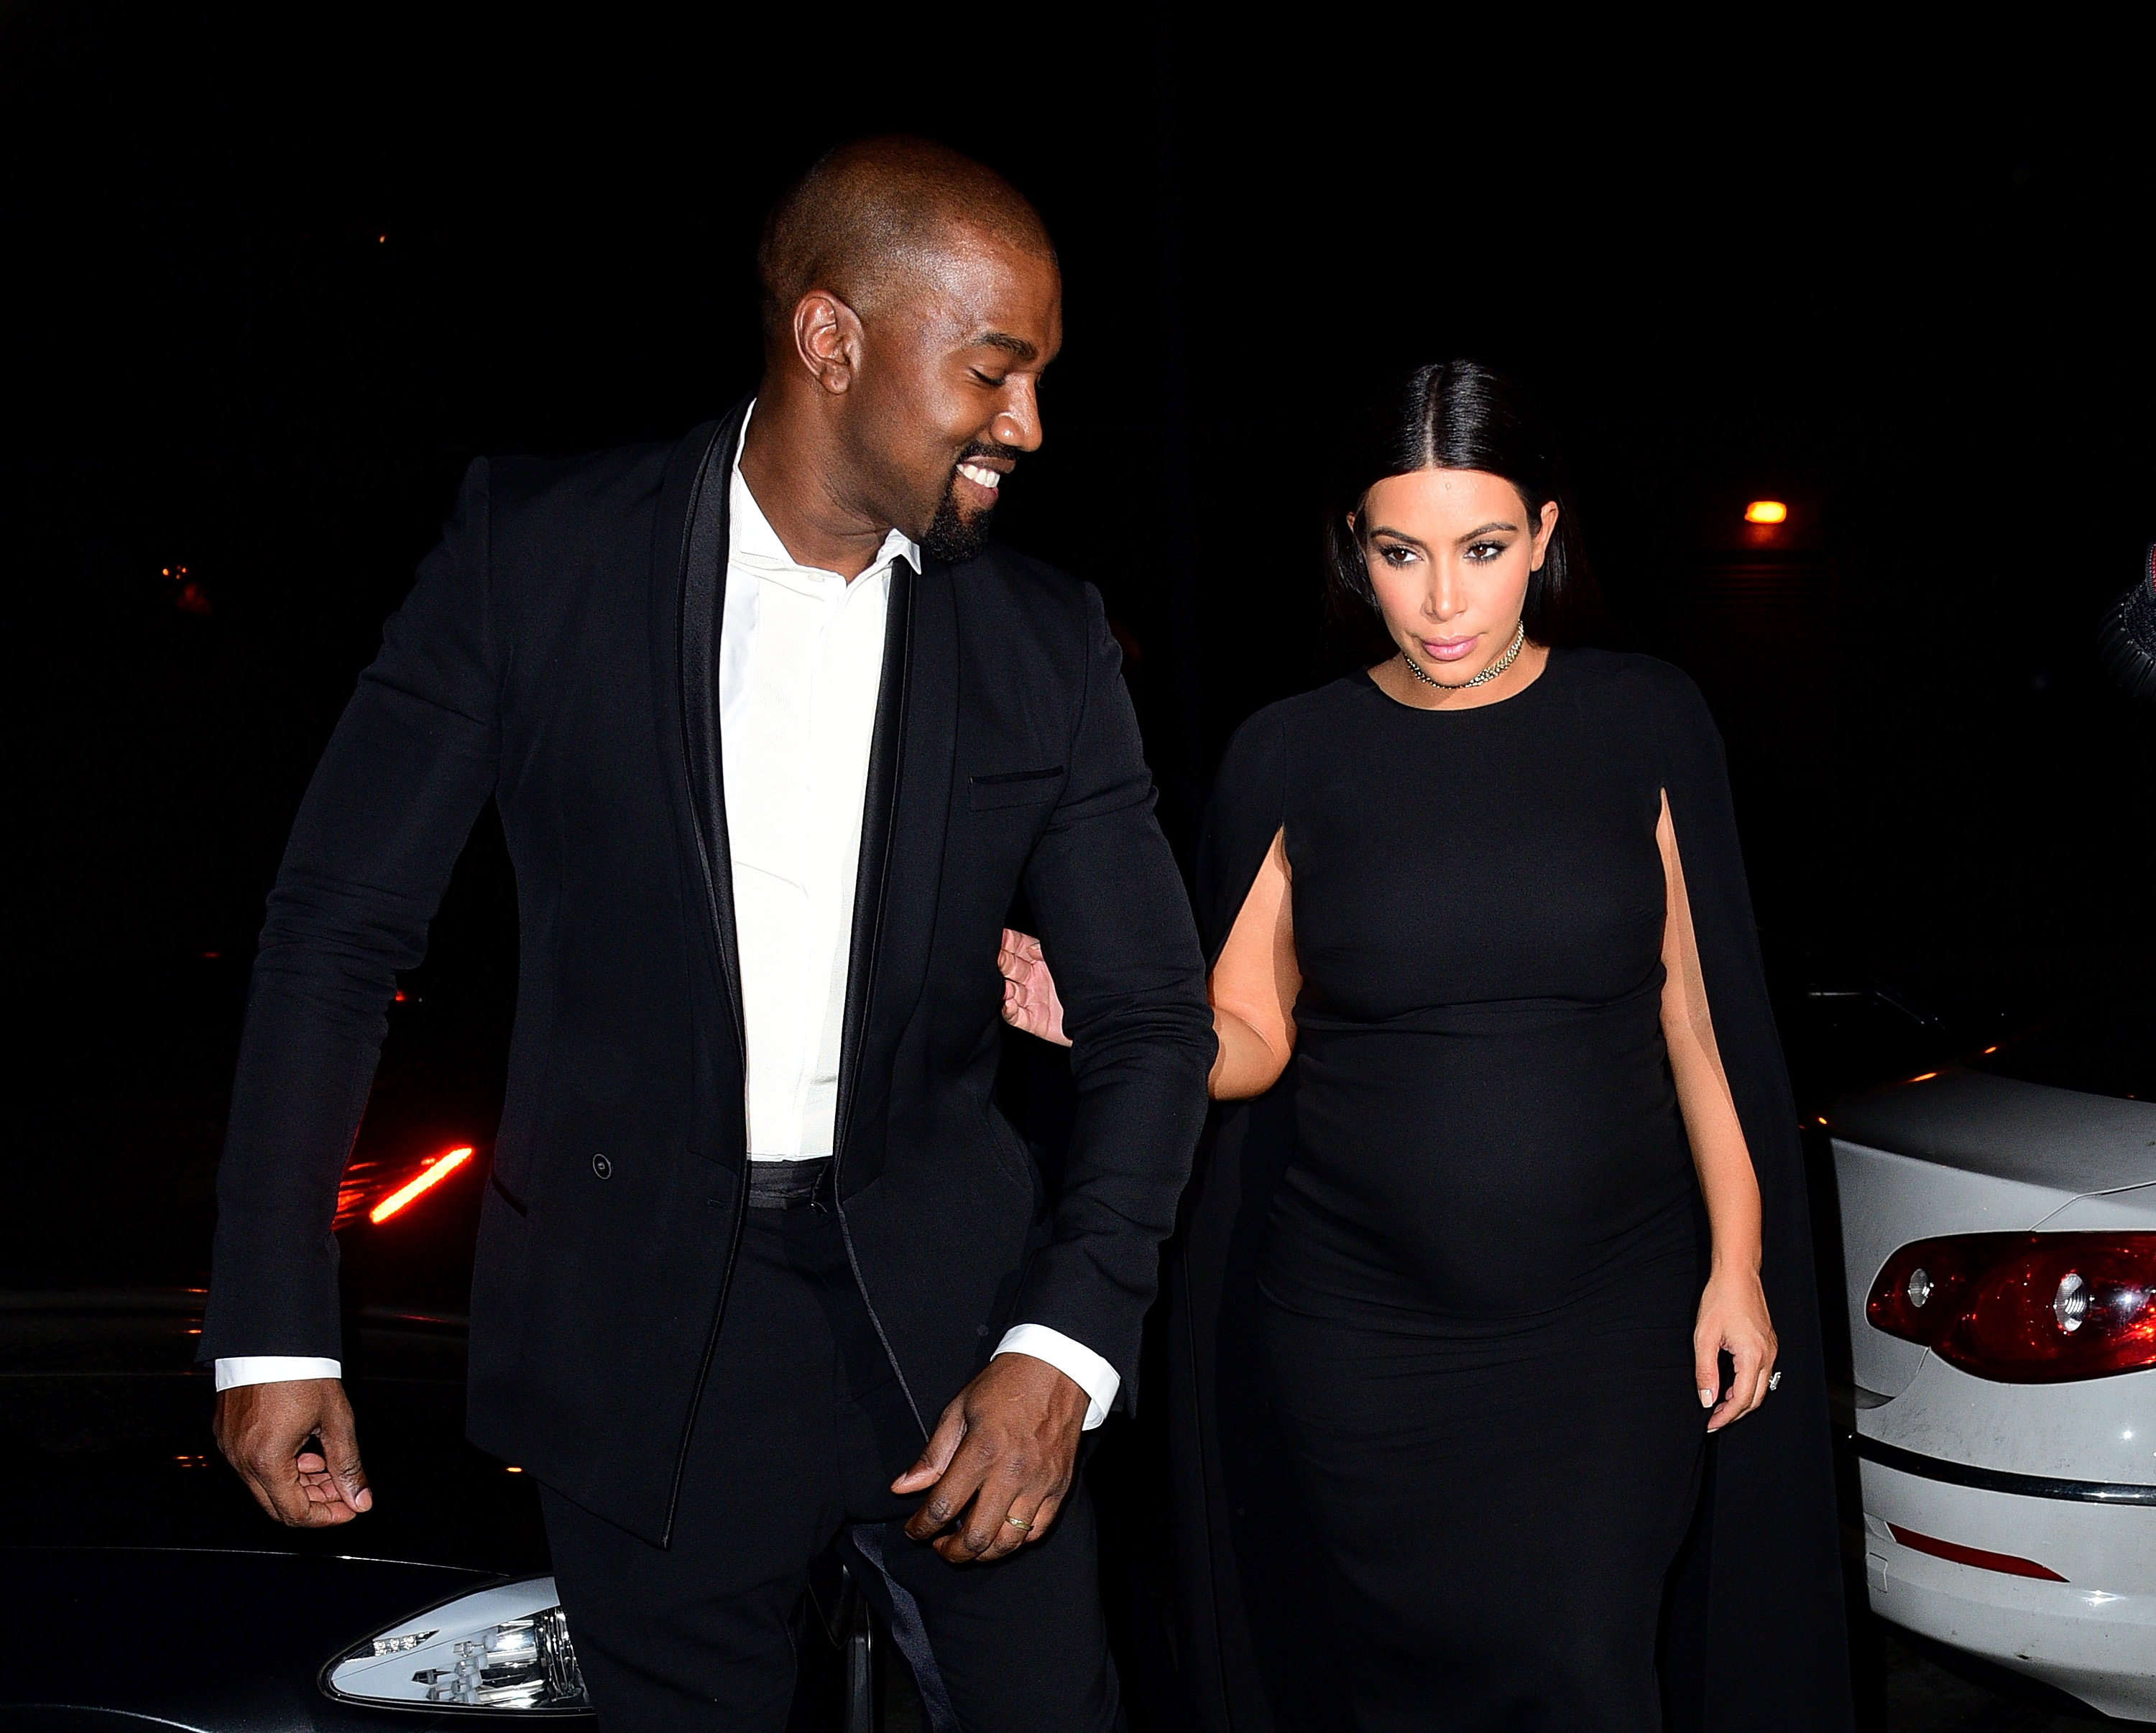 Kanye West and Kim Kardashian on Sept. 7, 2015 in New York City.